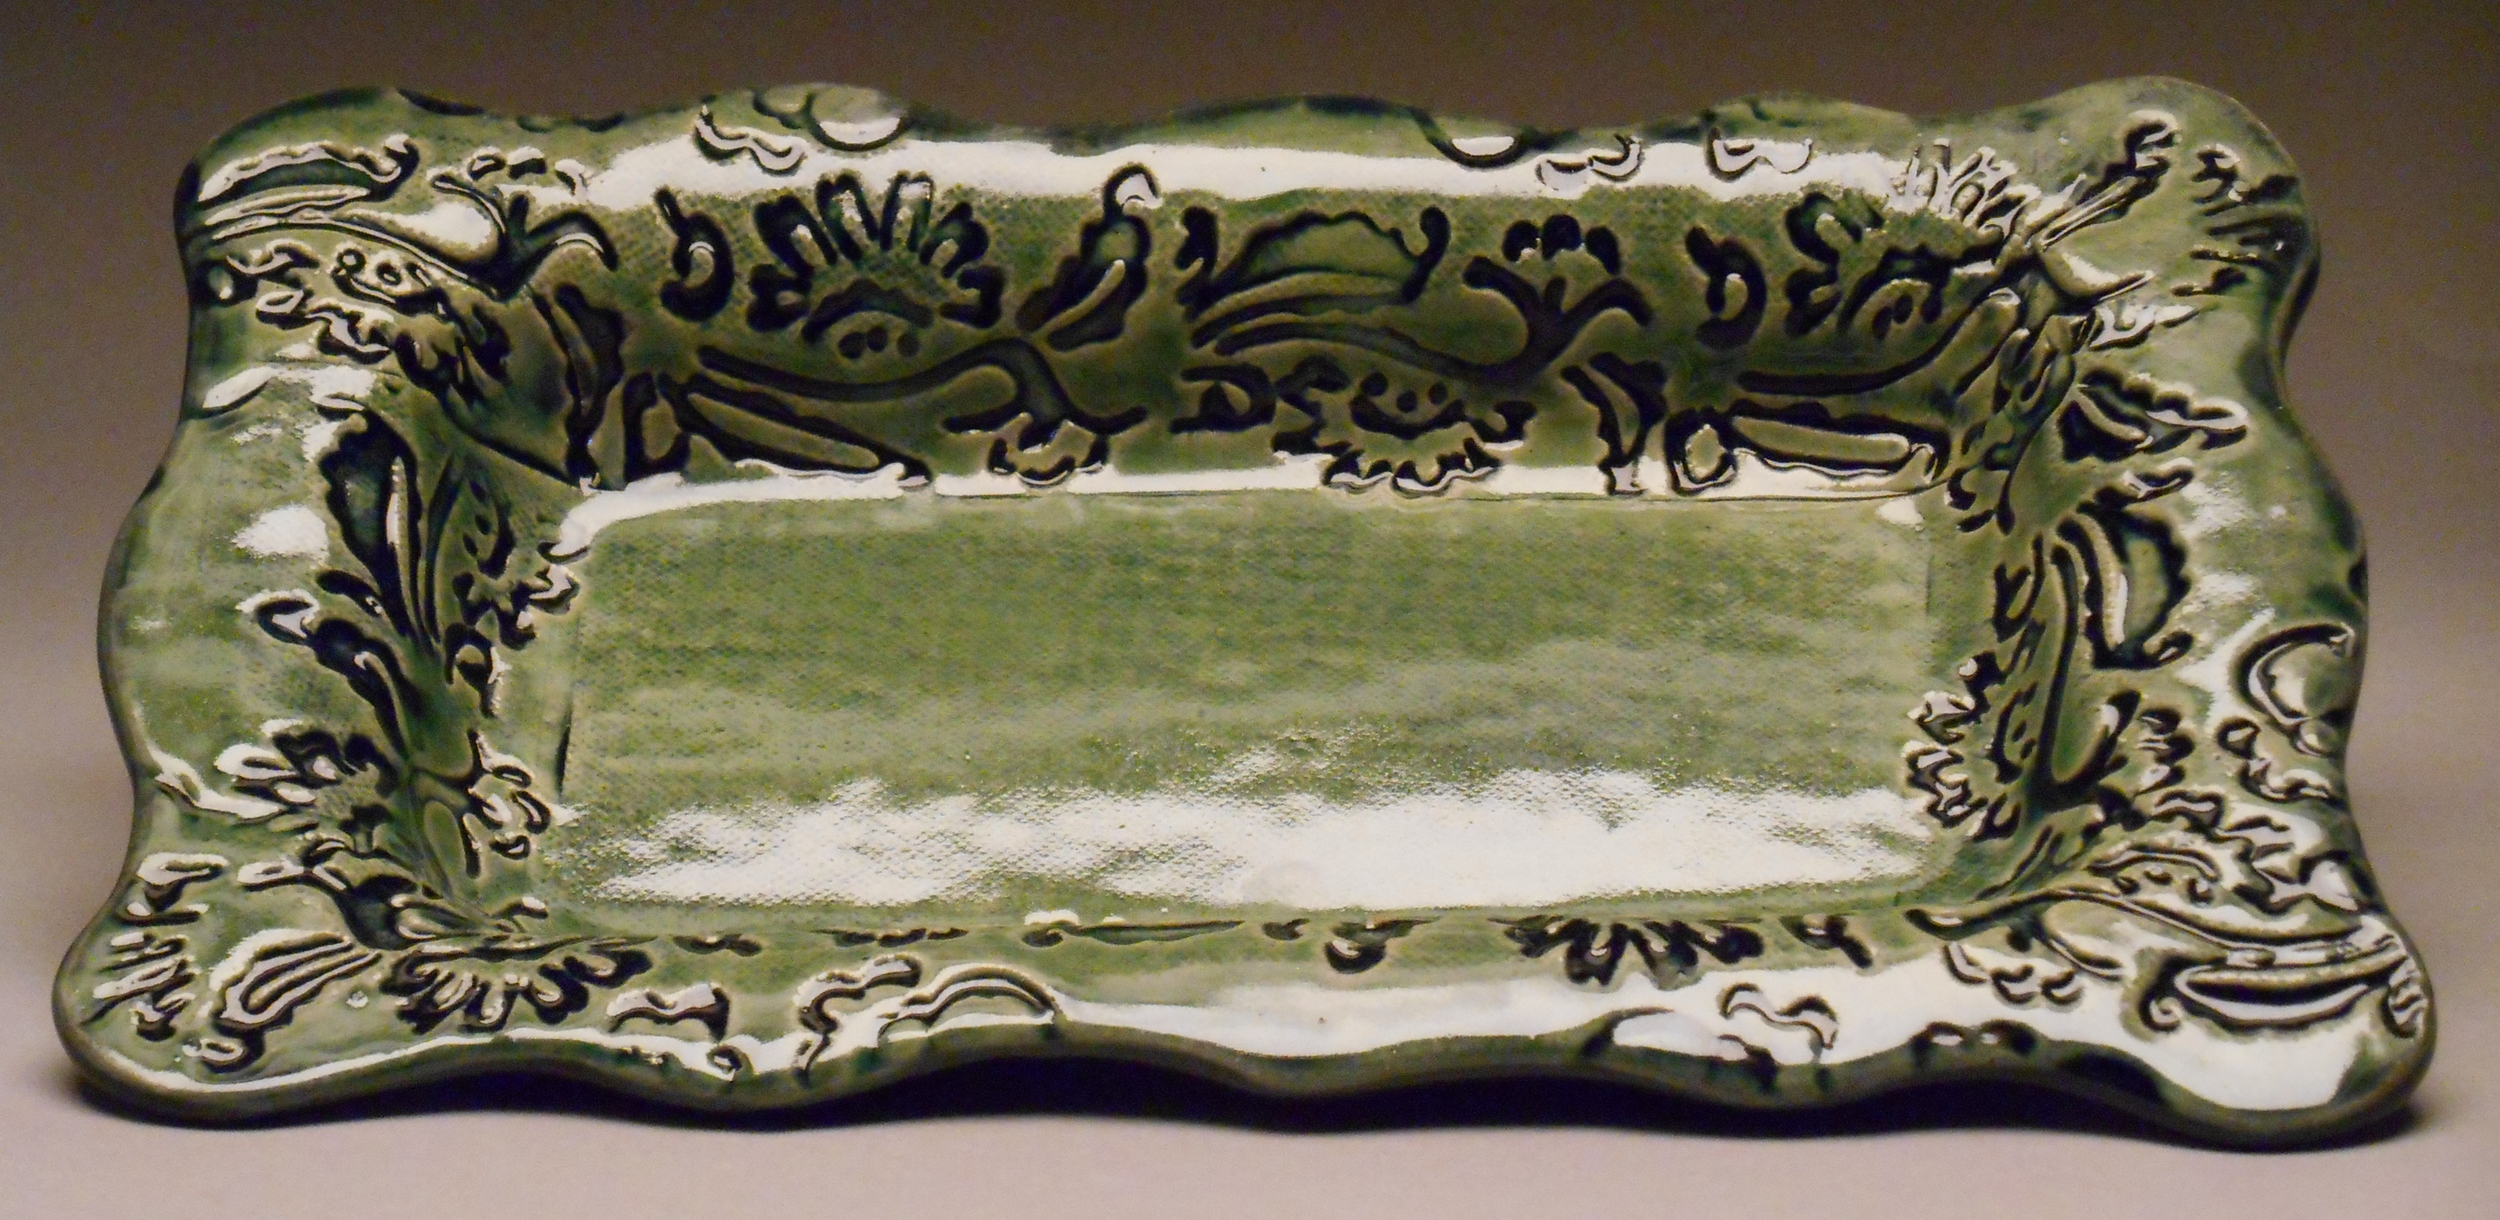 #172, Small Rectangular Tray with Floral Texture, 10.5x6